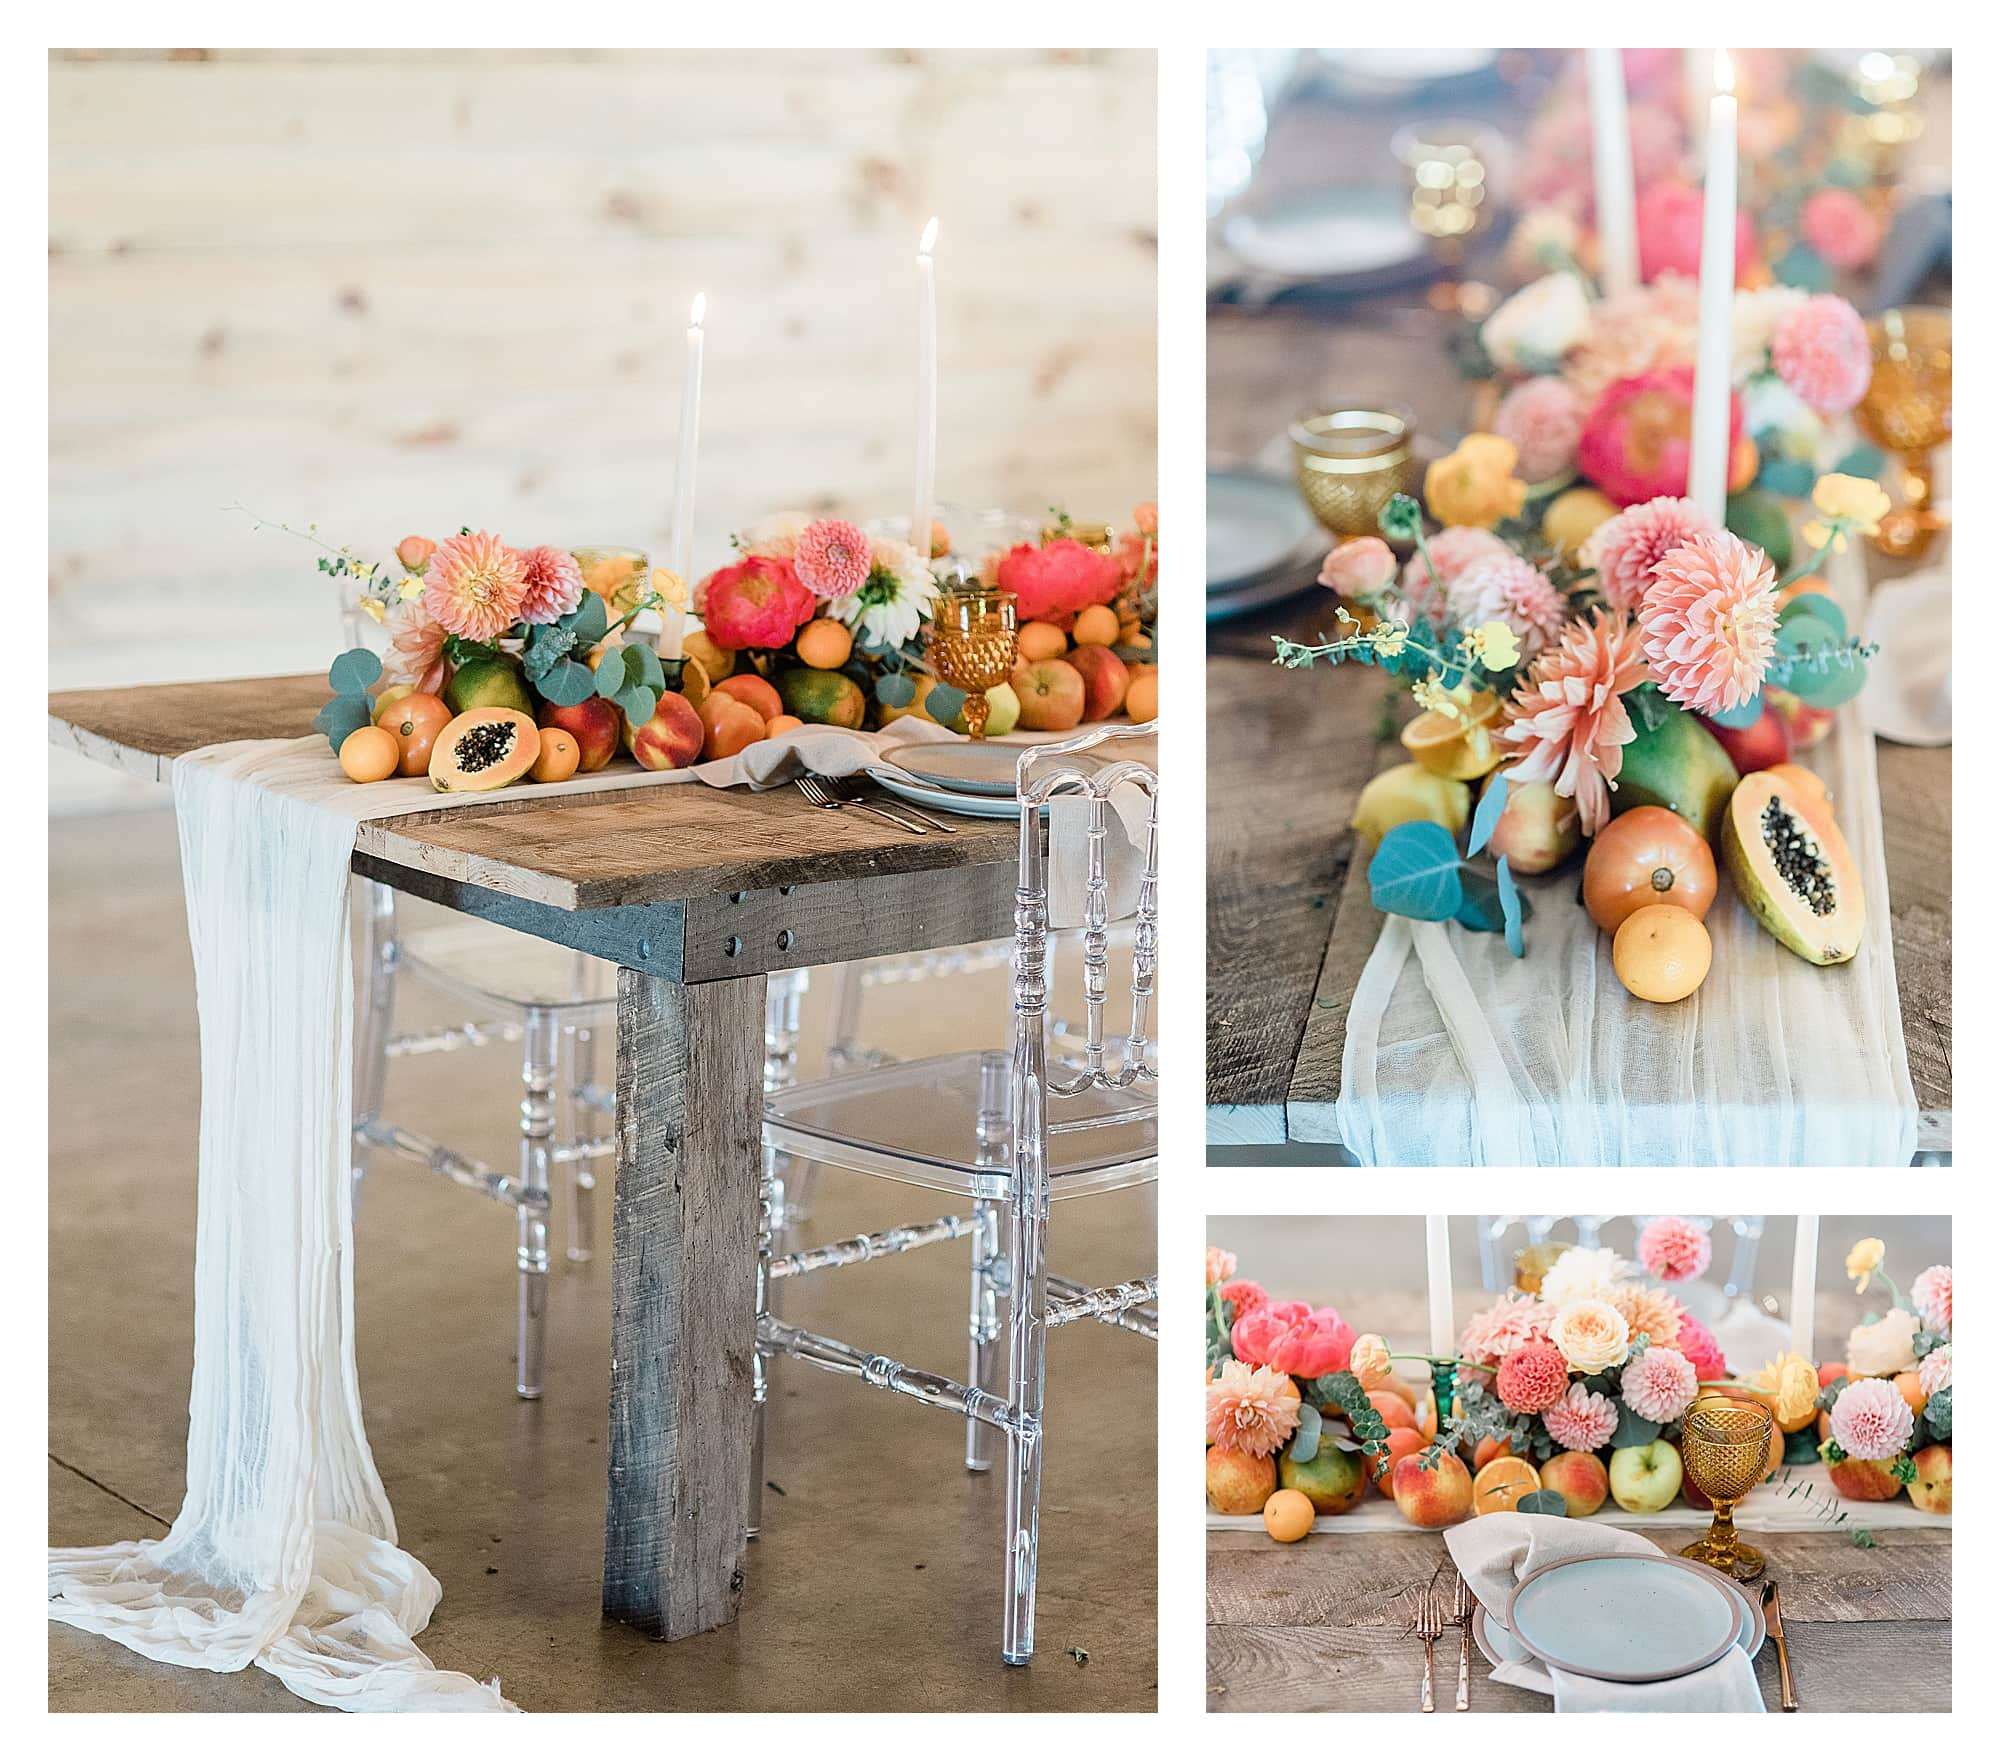 Rustic wooden table and clear plastic chairs with peach, pink and yellow citrus fruits as centrepiece down center of table with white candles